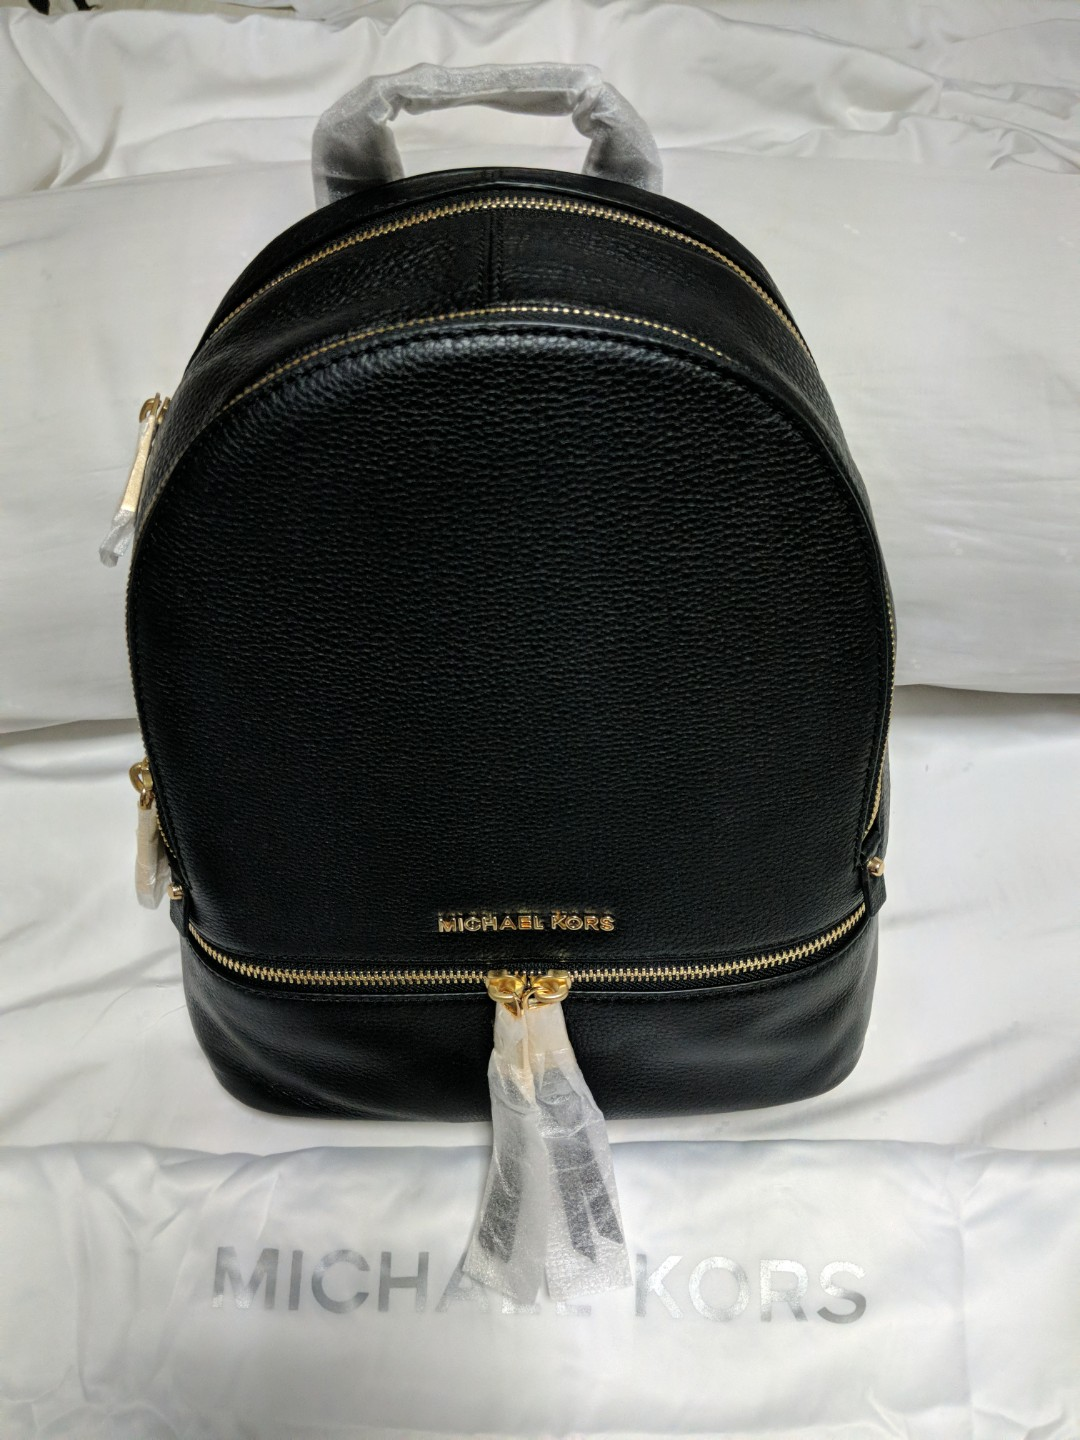 3522a30b17a8 Michael Kors Rhea Medium Leather Backpack, Luxury, Bags & Wallets ...